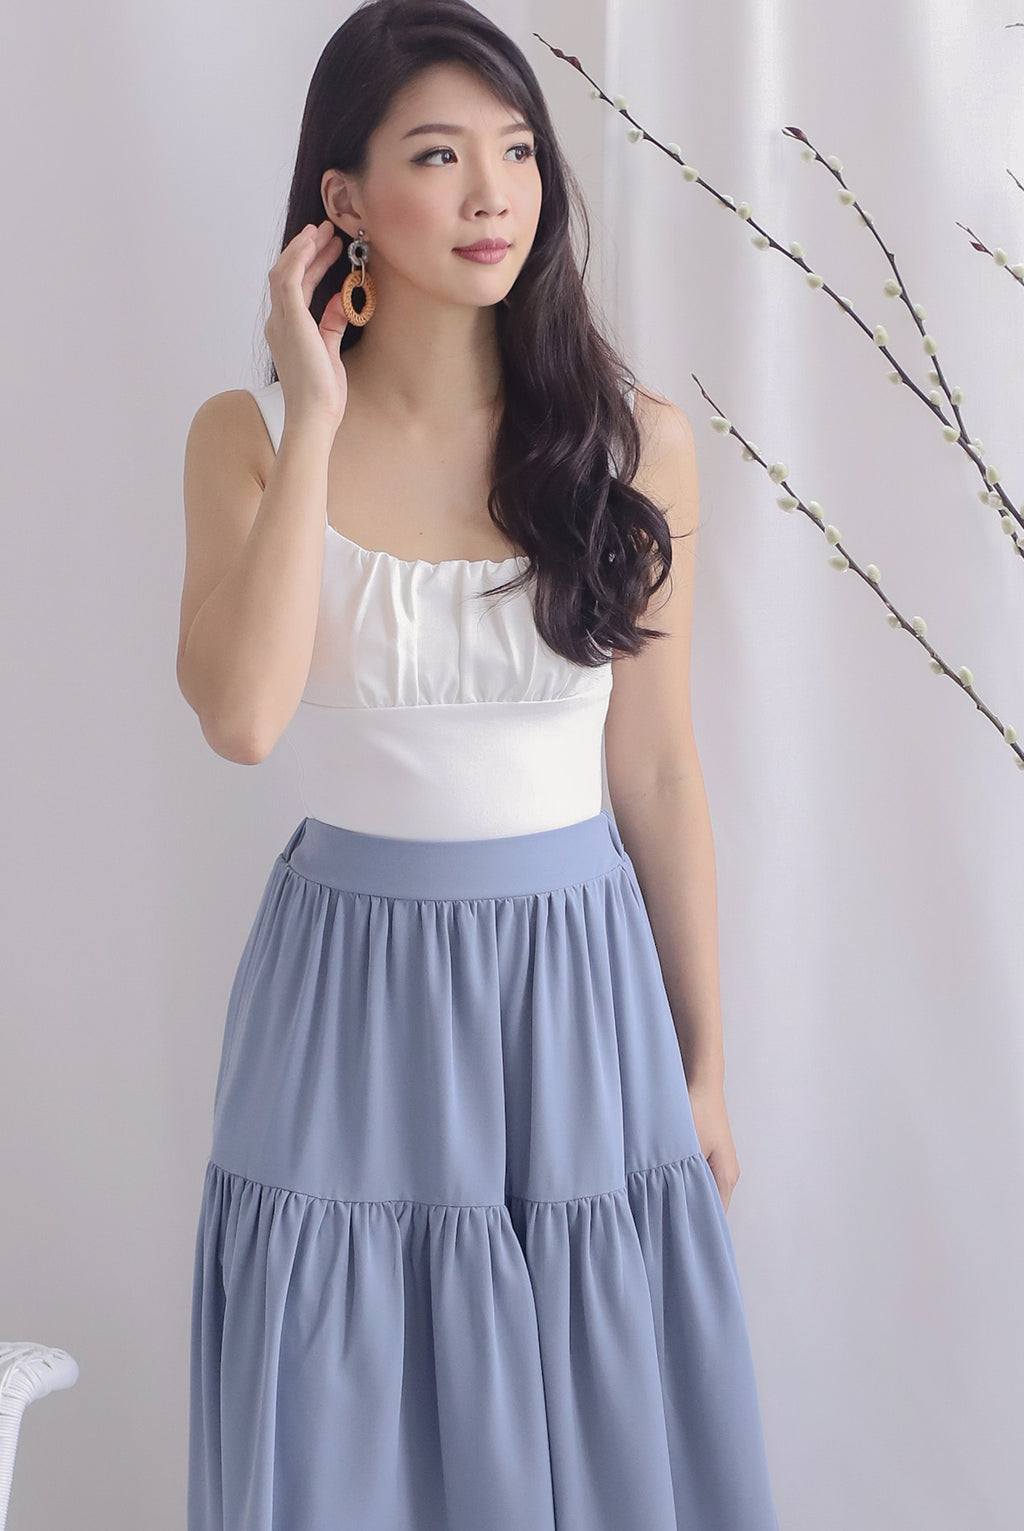 Melodia Bustier Top In White